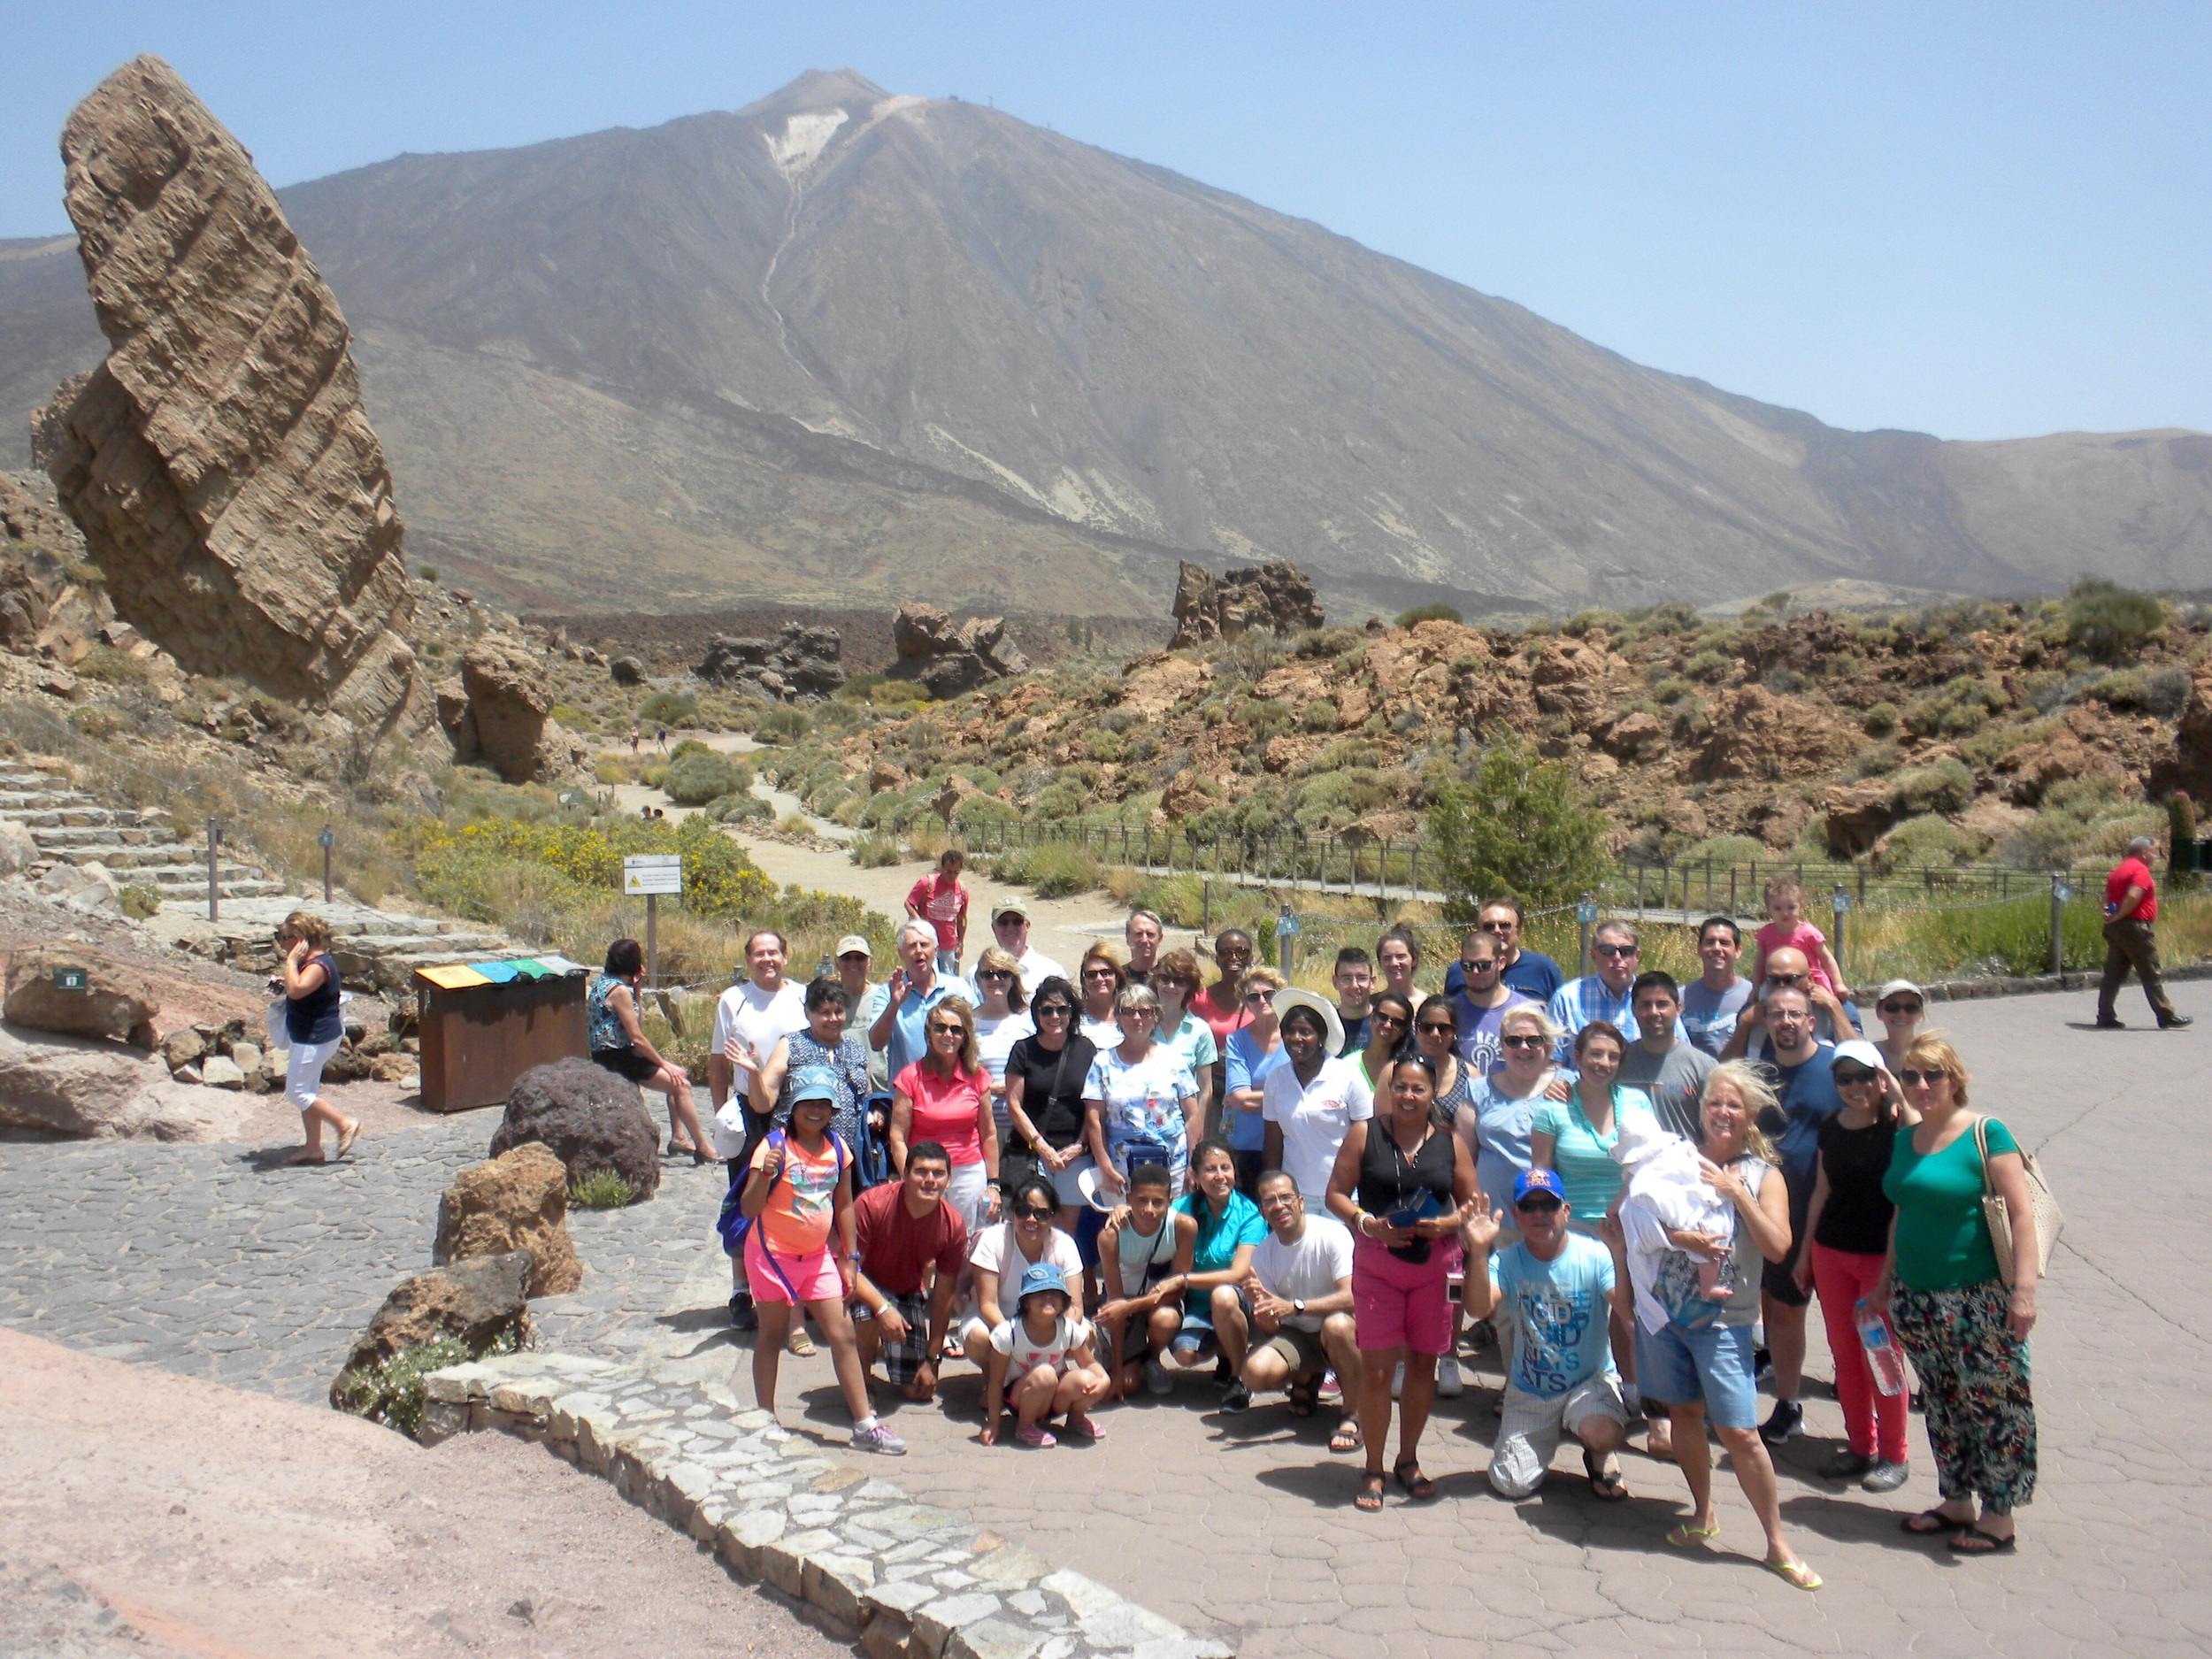 El Teide Volcano - highest peak in Spain